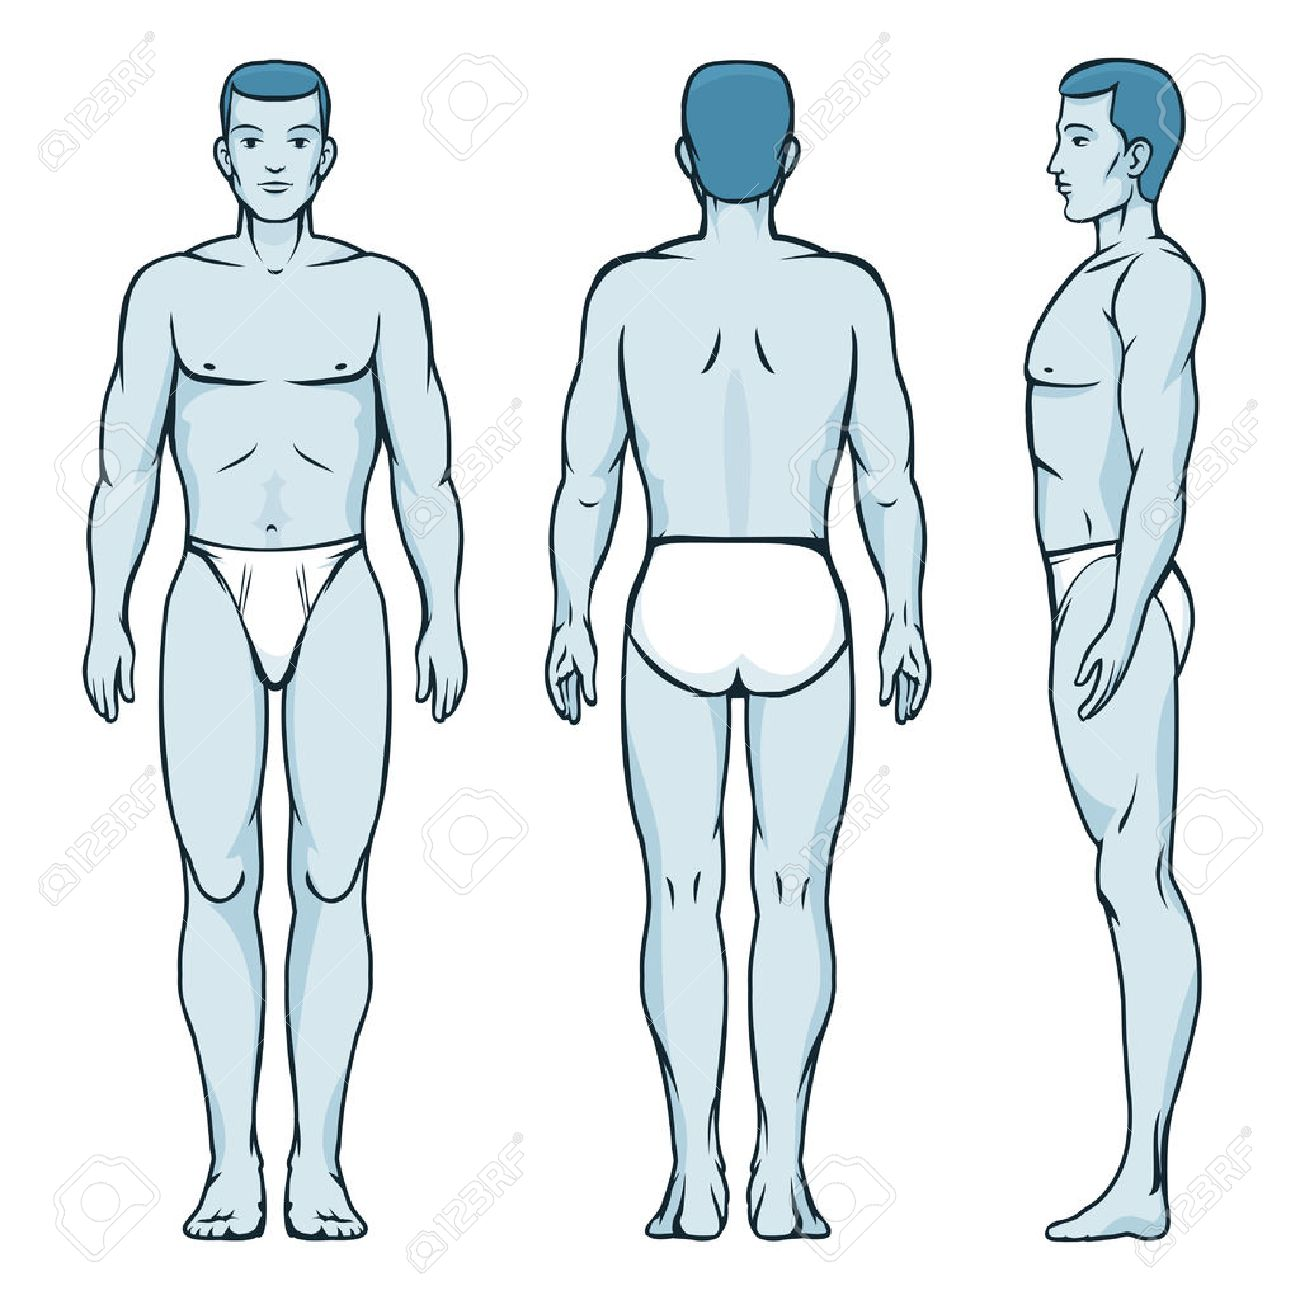 Man body model  Front, back and side human poses